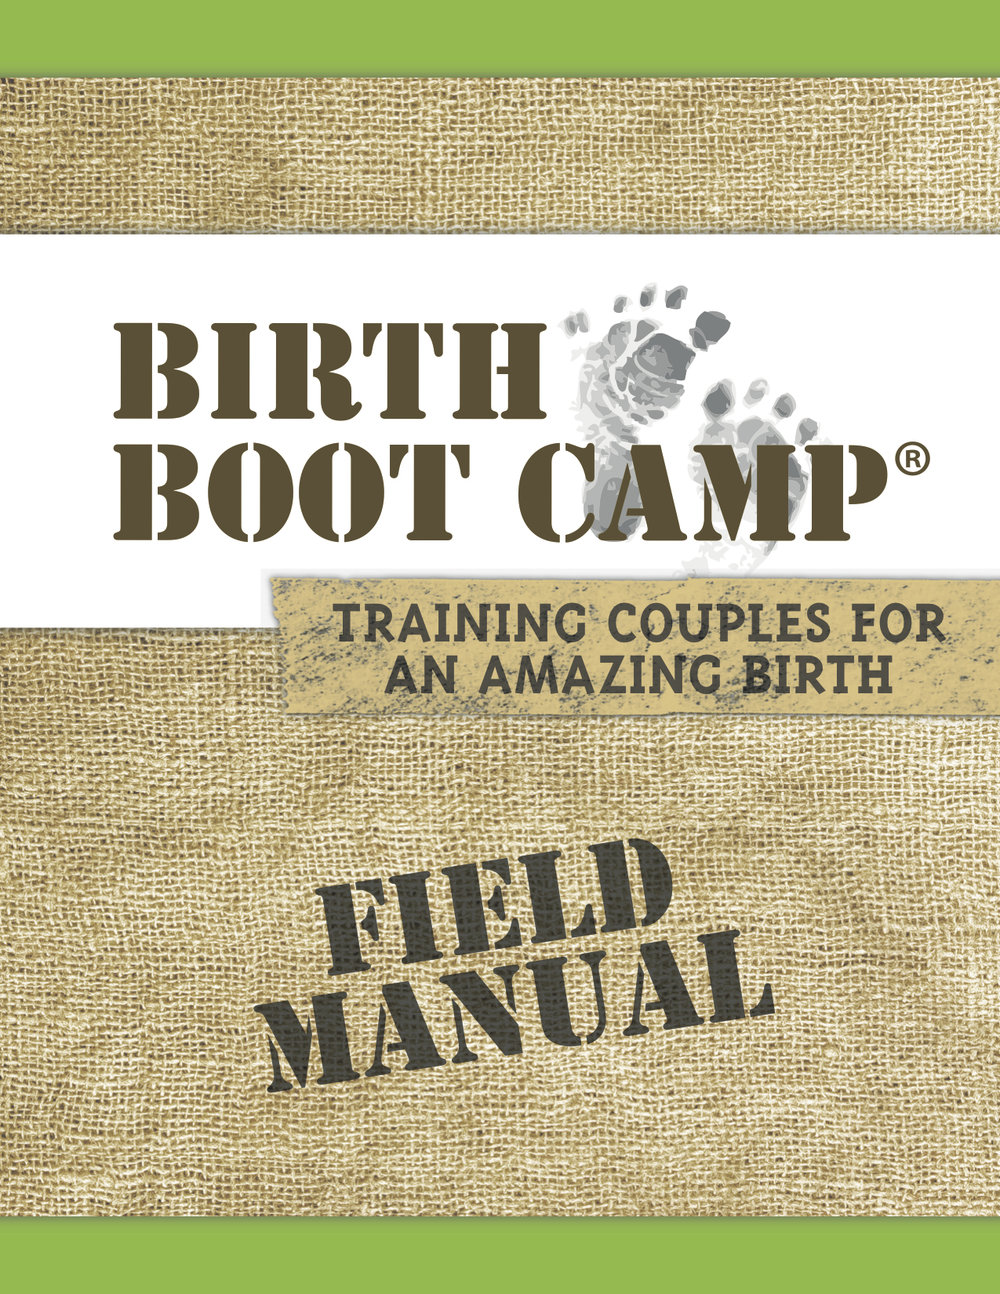 Birth Boot Camp Comprehensive Childbirth Class in Austin, Tx.